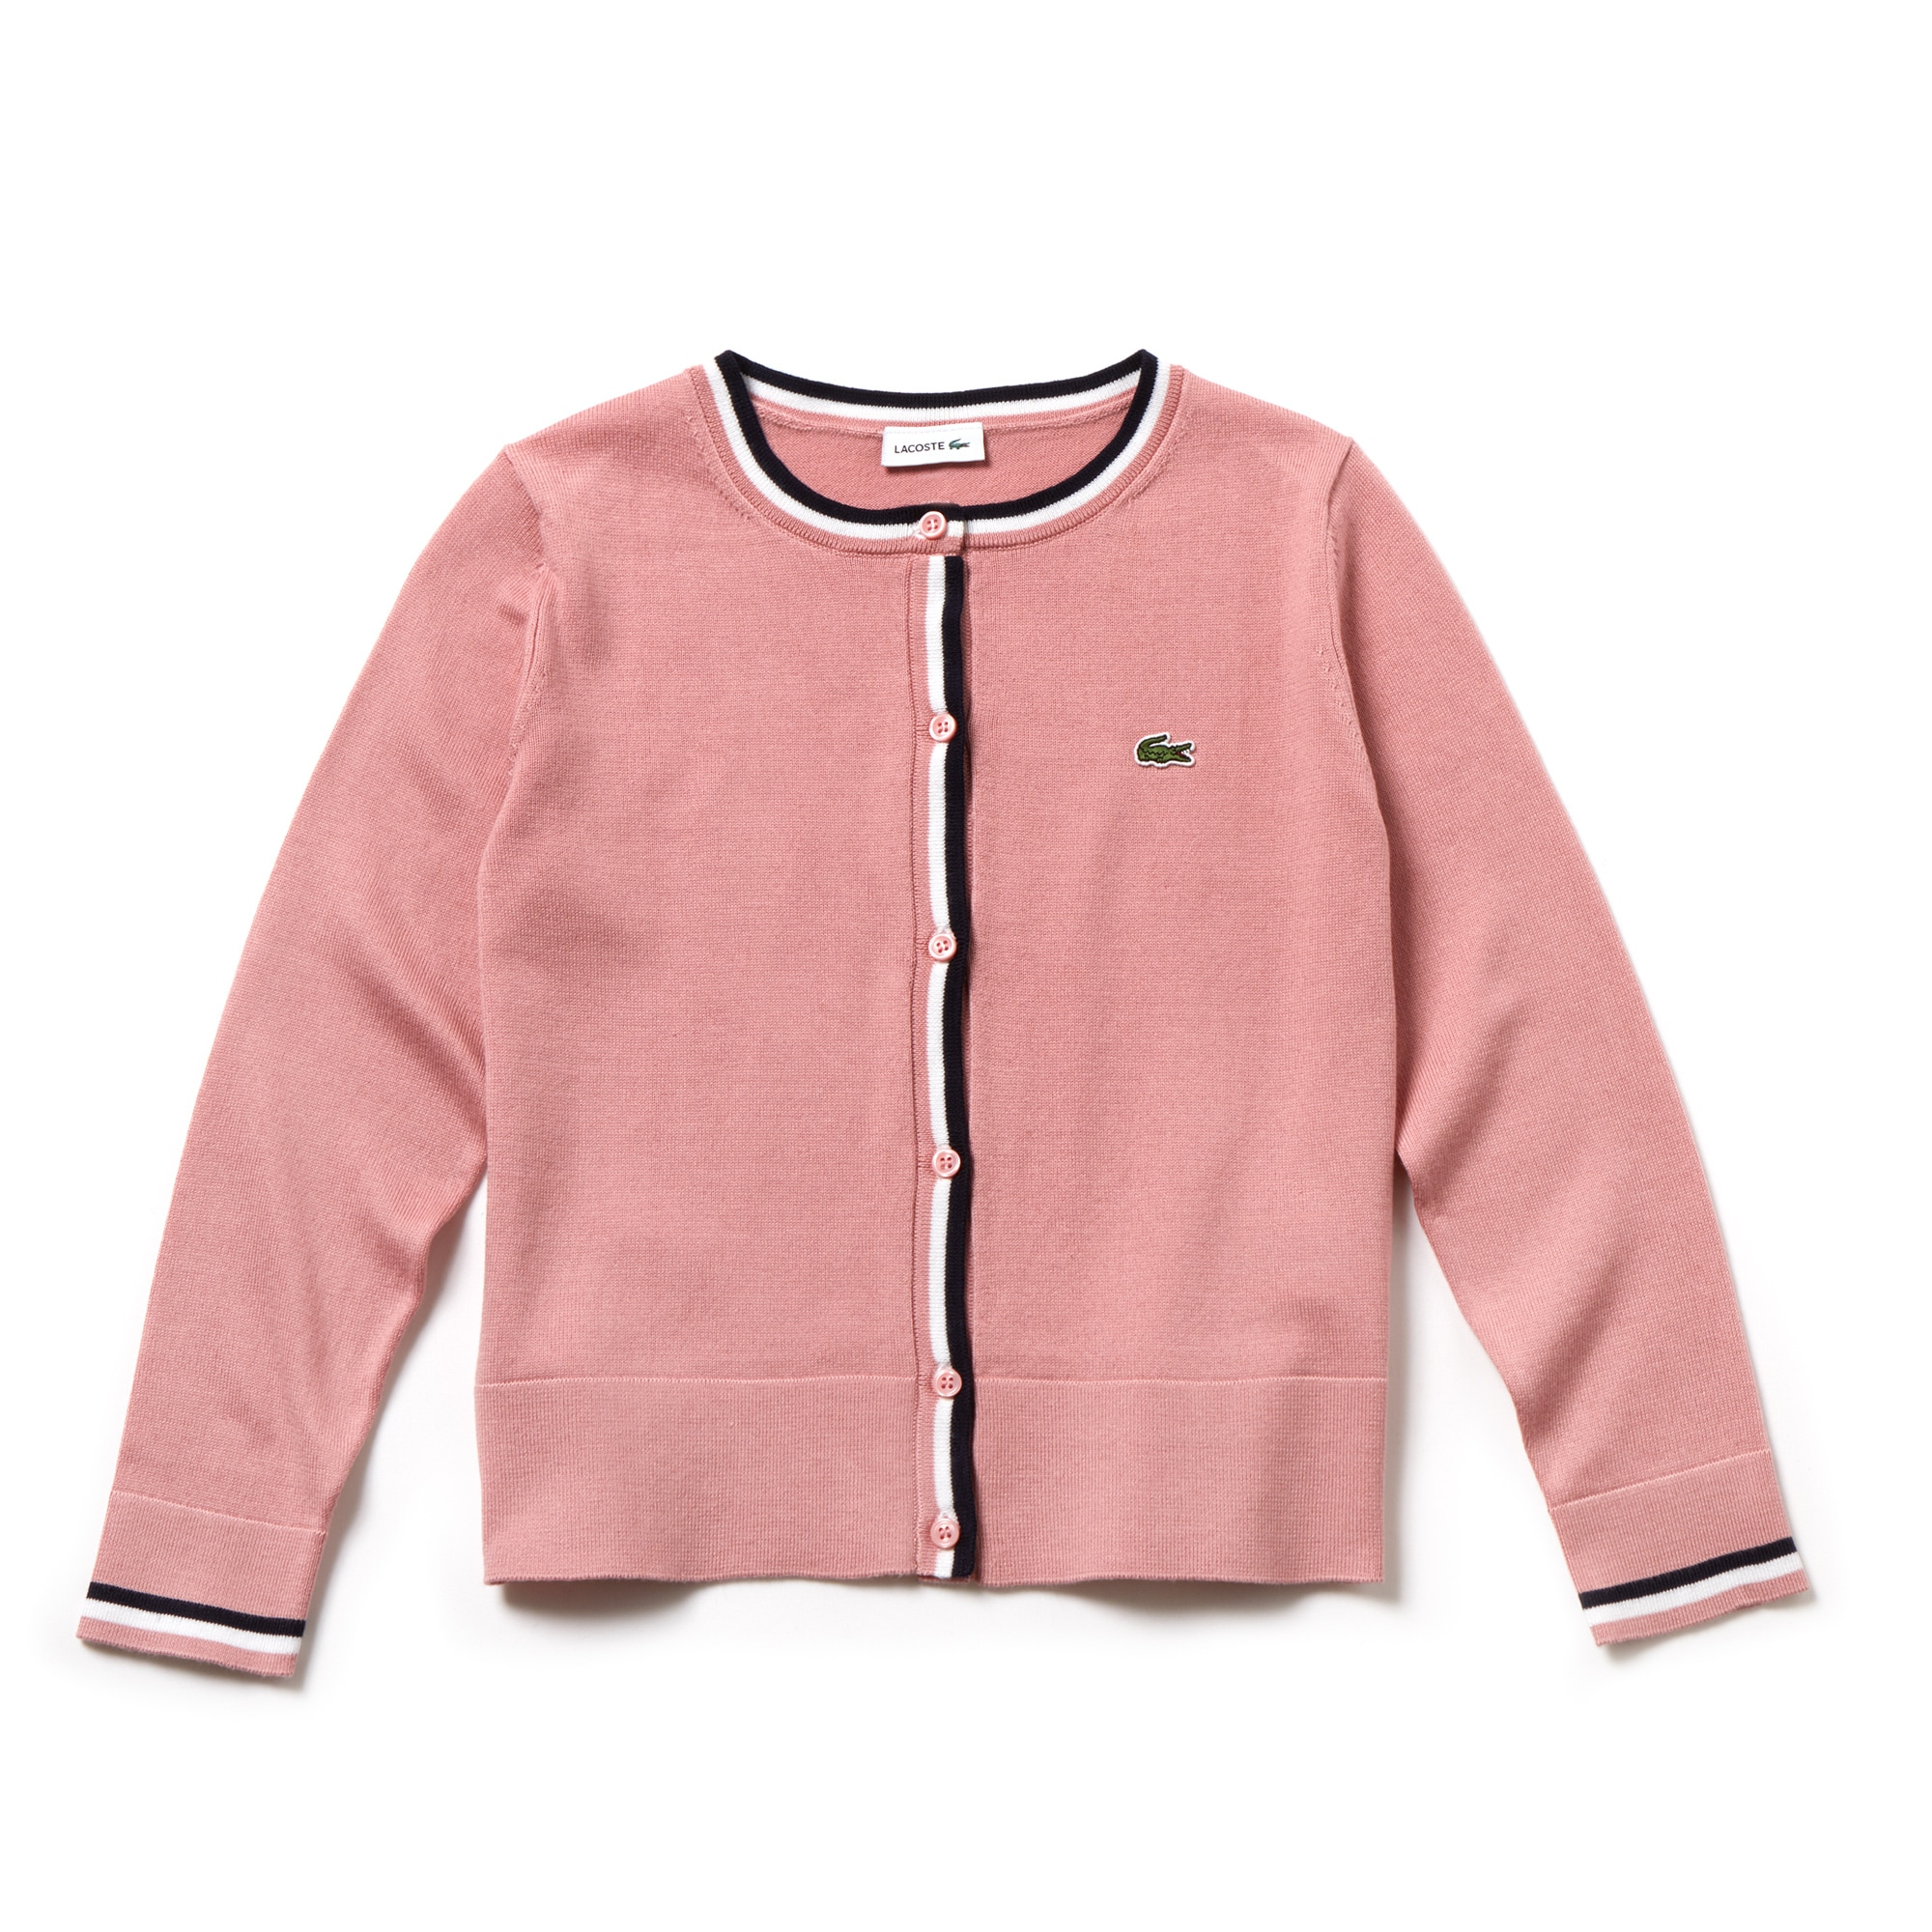 Girls' Contrast Finishes Cotton Cardigan